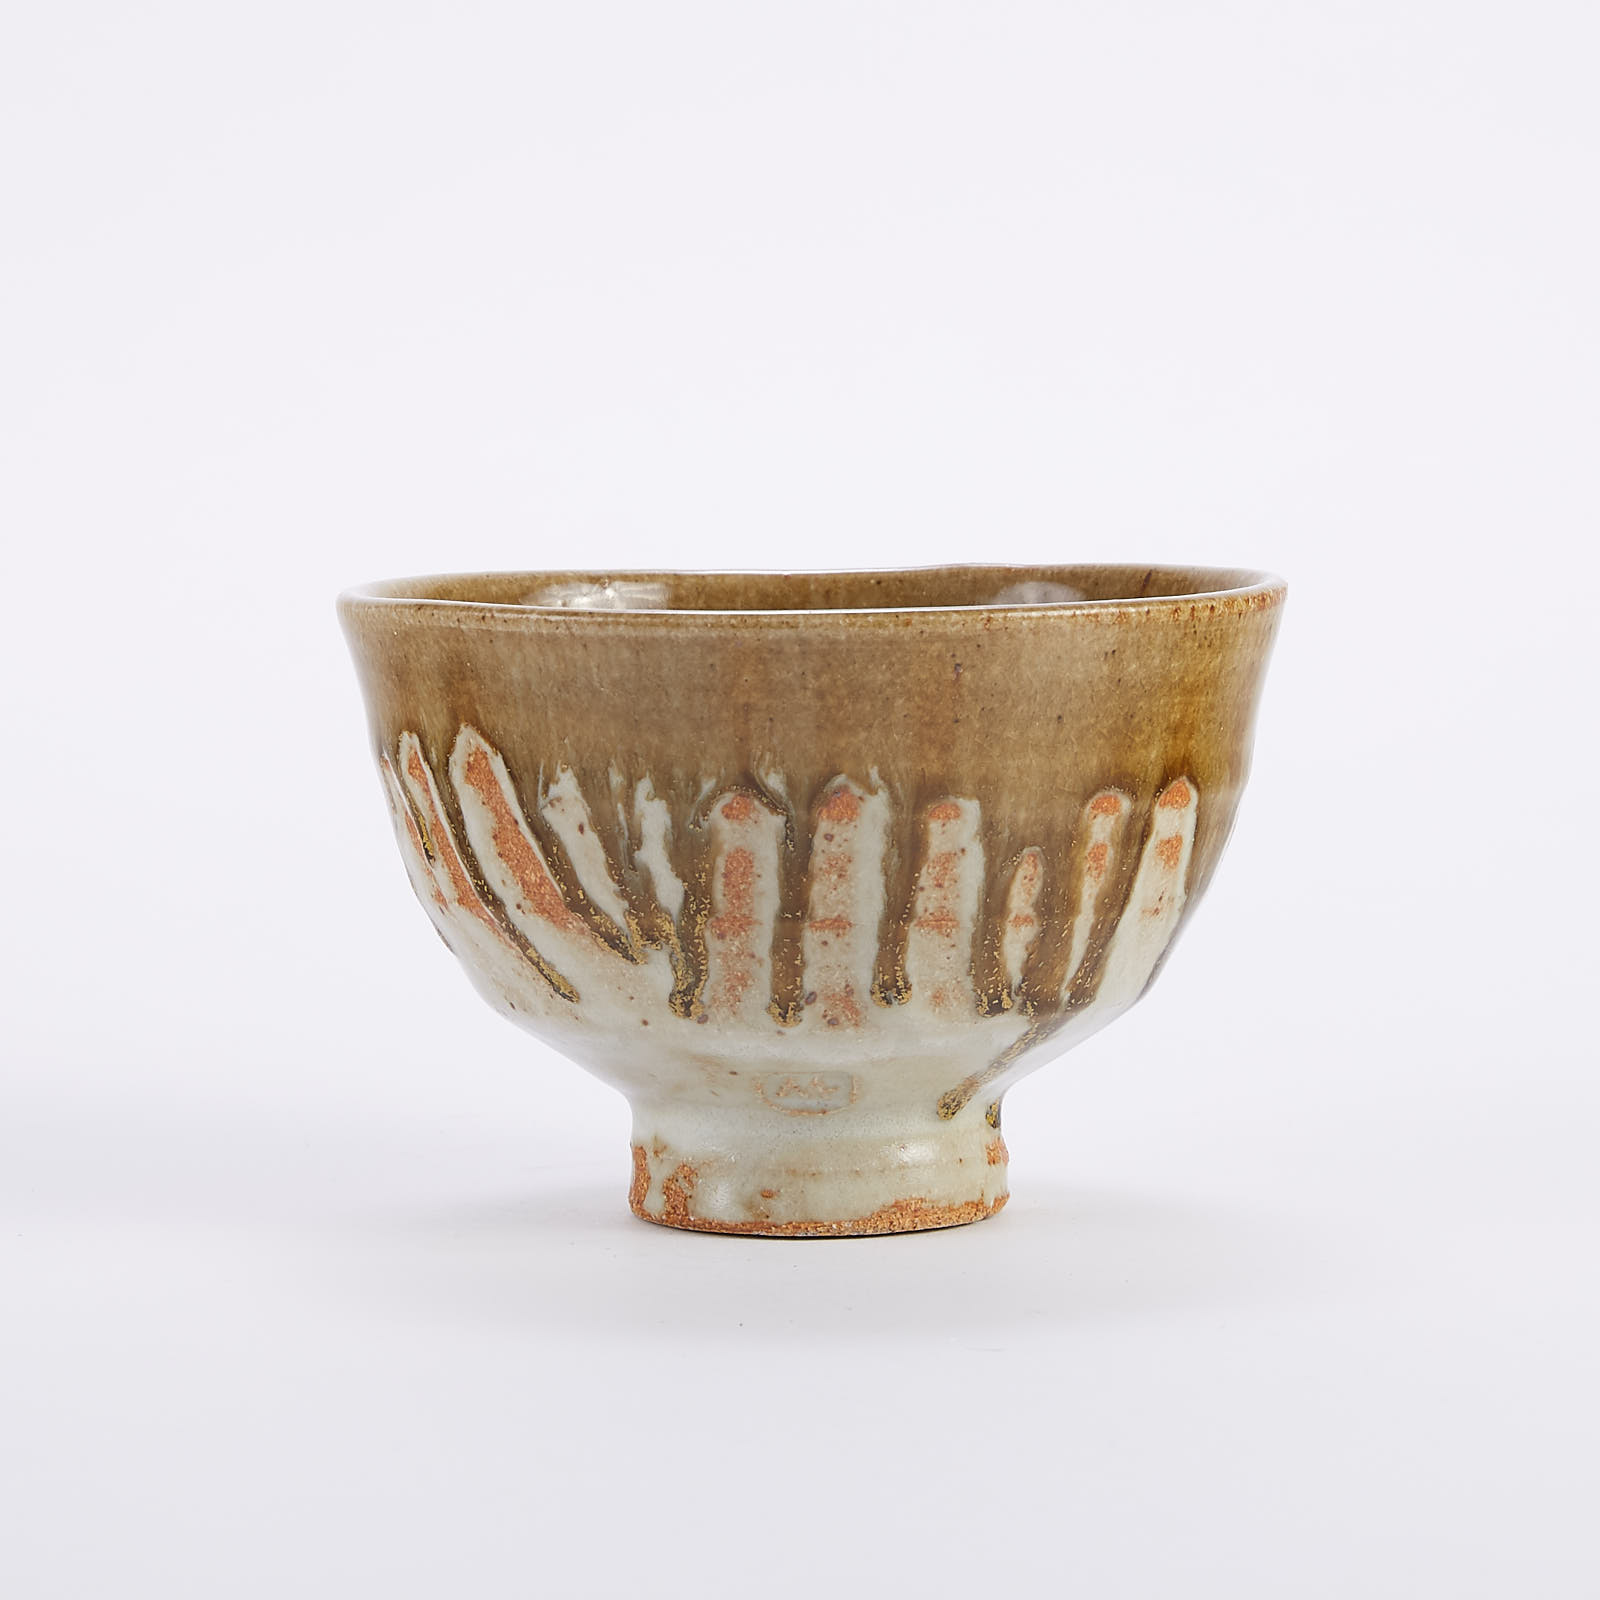 Lot 001: Warren MacKenzie Studio Pottery Bowl w/ Drip Glaze